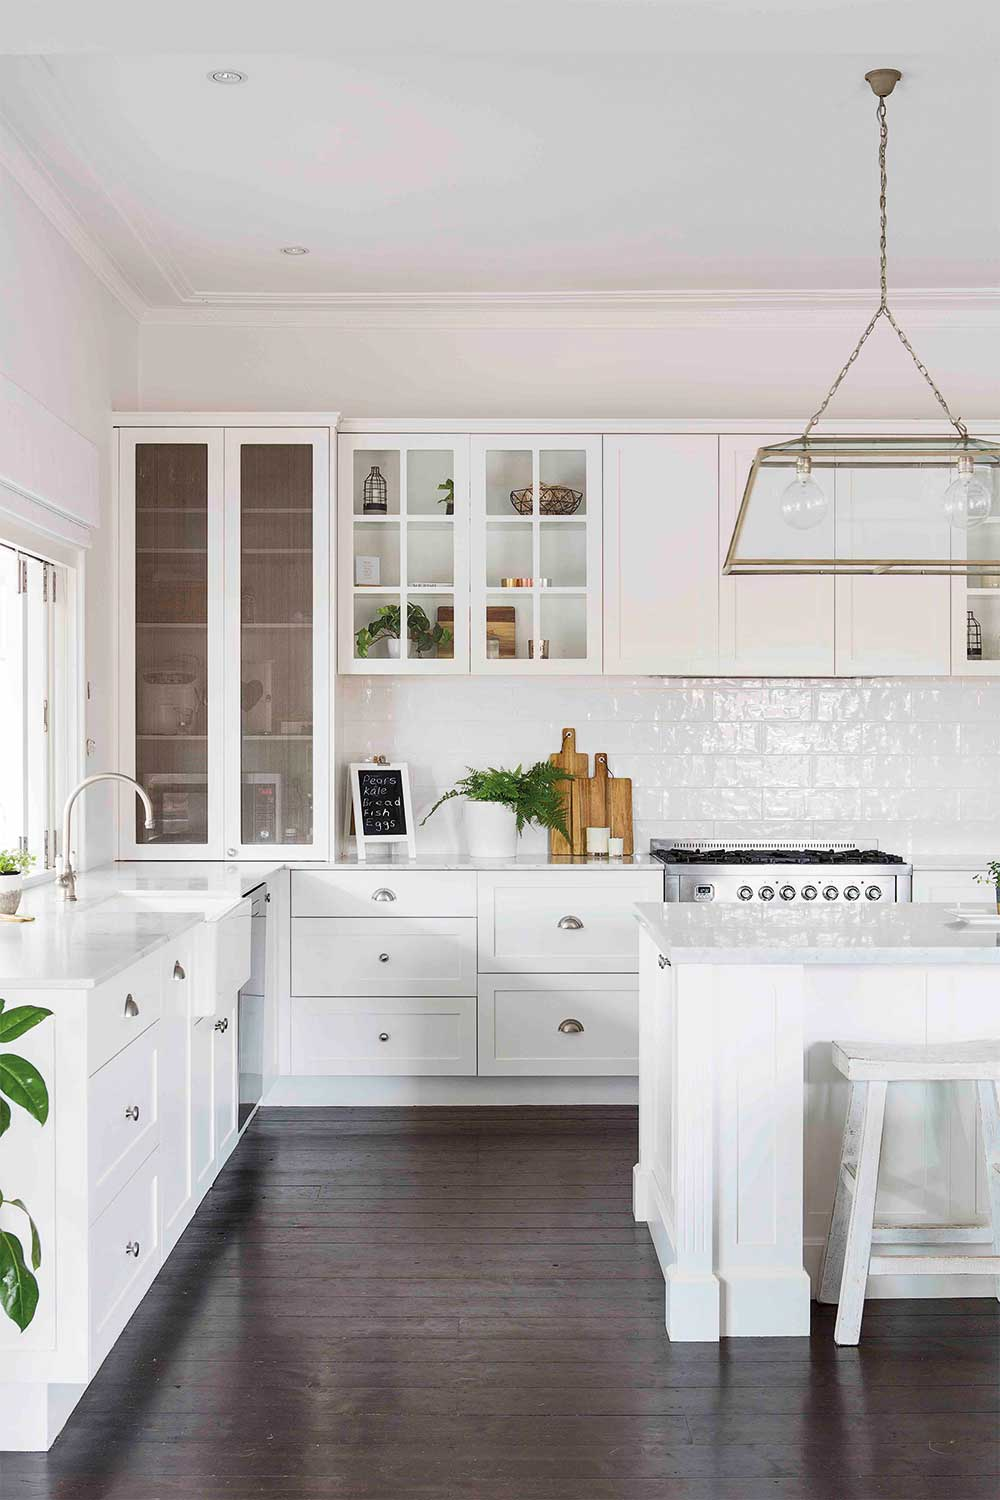 10 essential elements to creating Hamptons style interiors ...